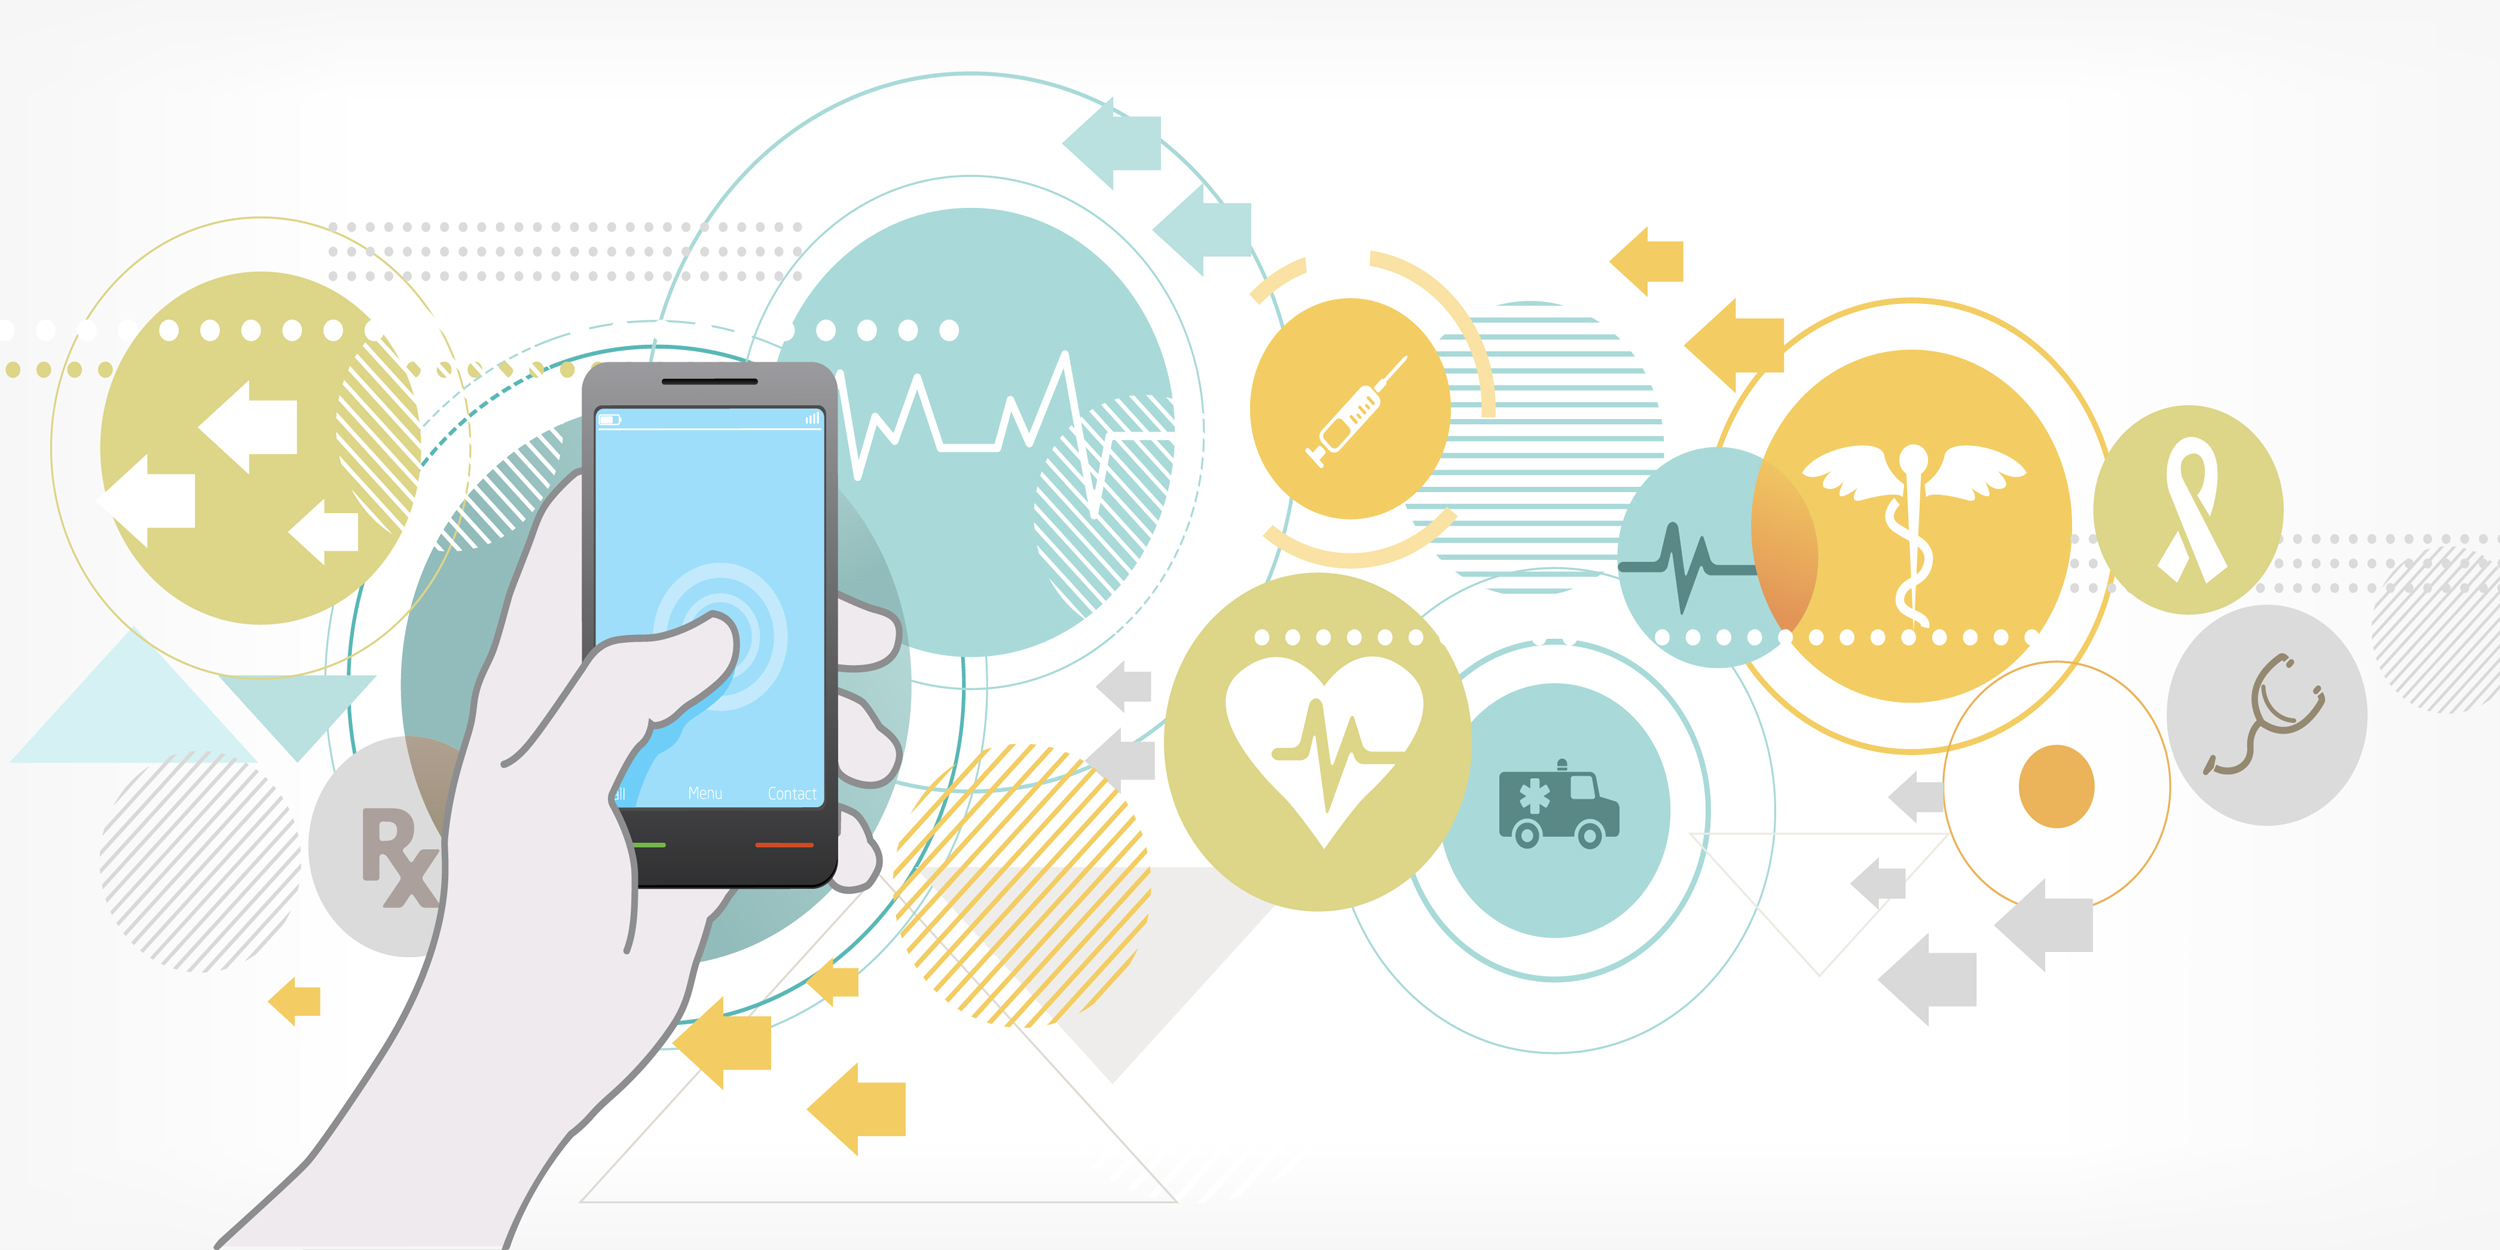 information communication technology in healthcare The promise of information and communication technology in healthcare: extracting value from the chaos.